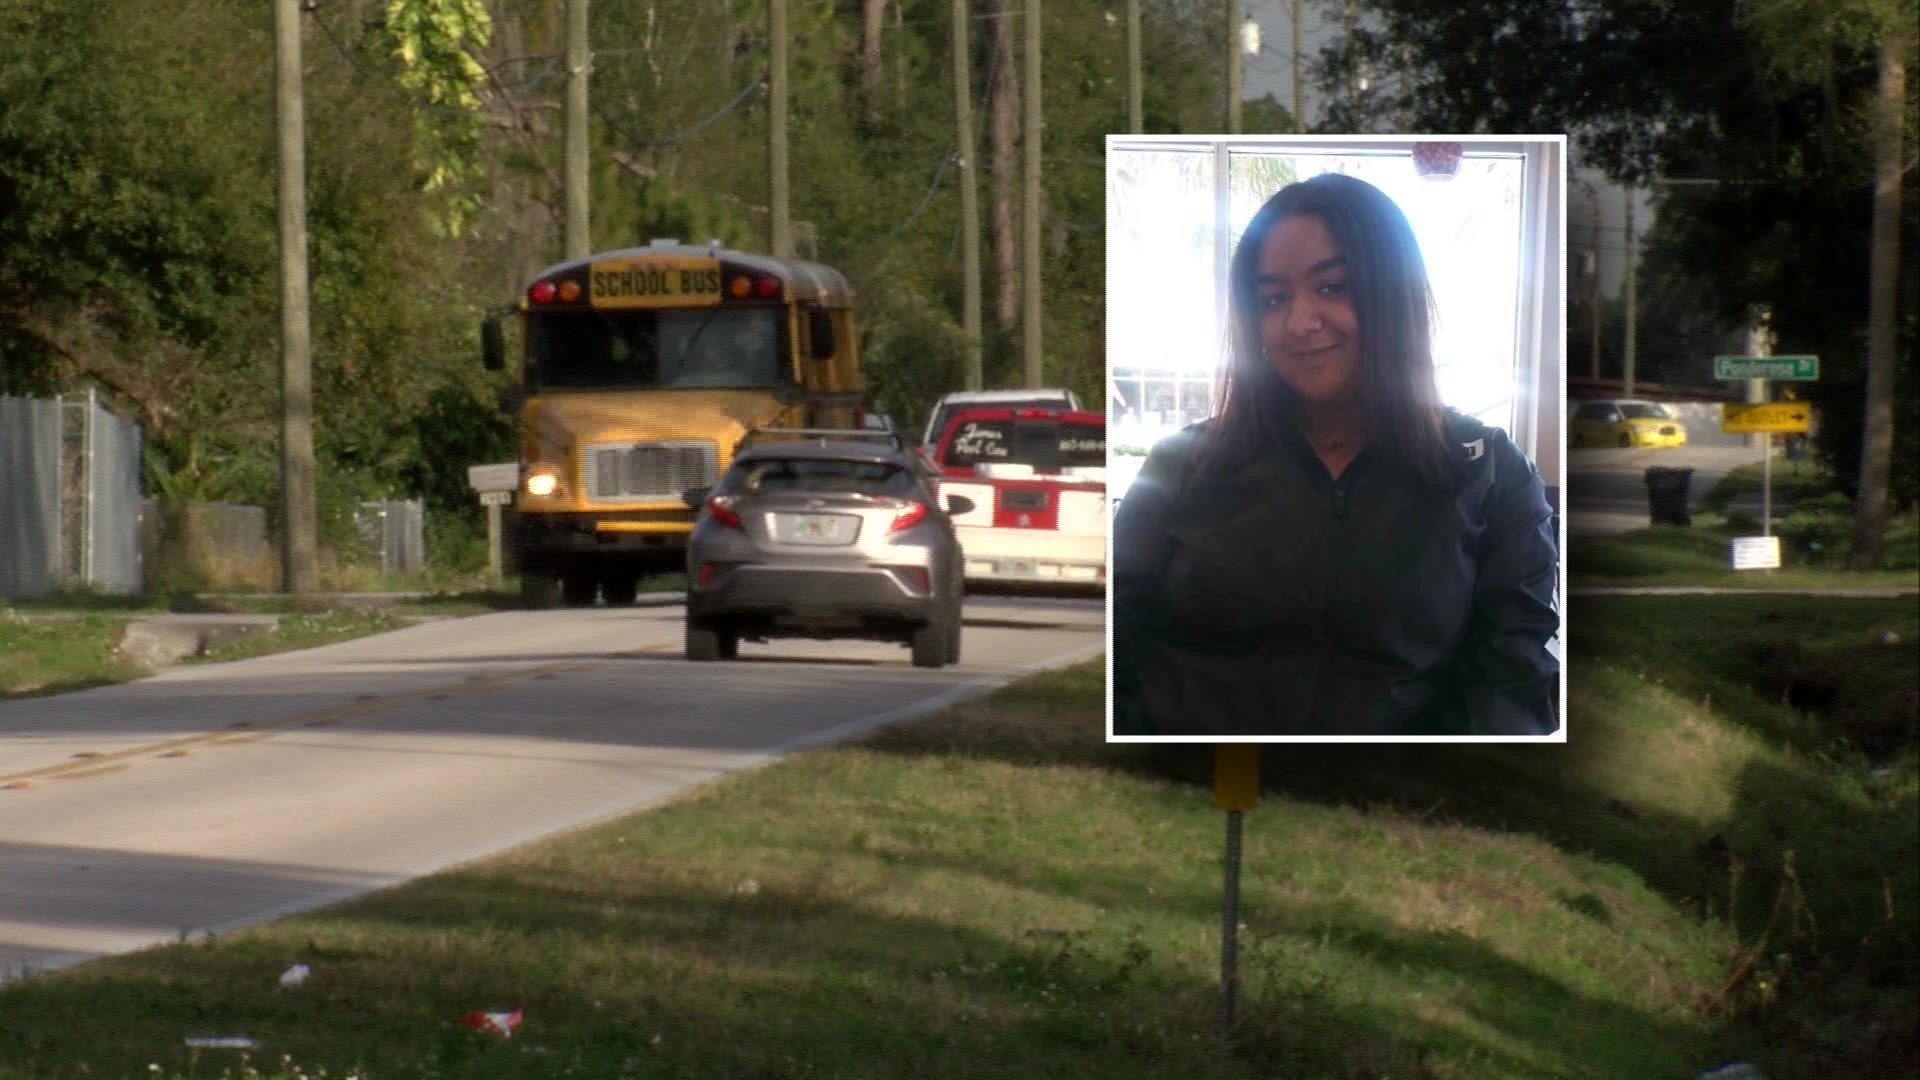 Family, neighbors demanding safety improvements after hit and run in Lakeland